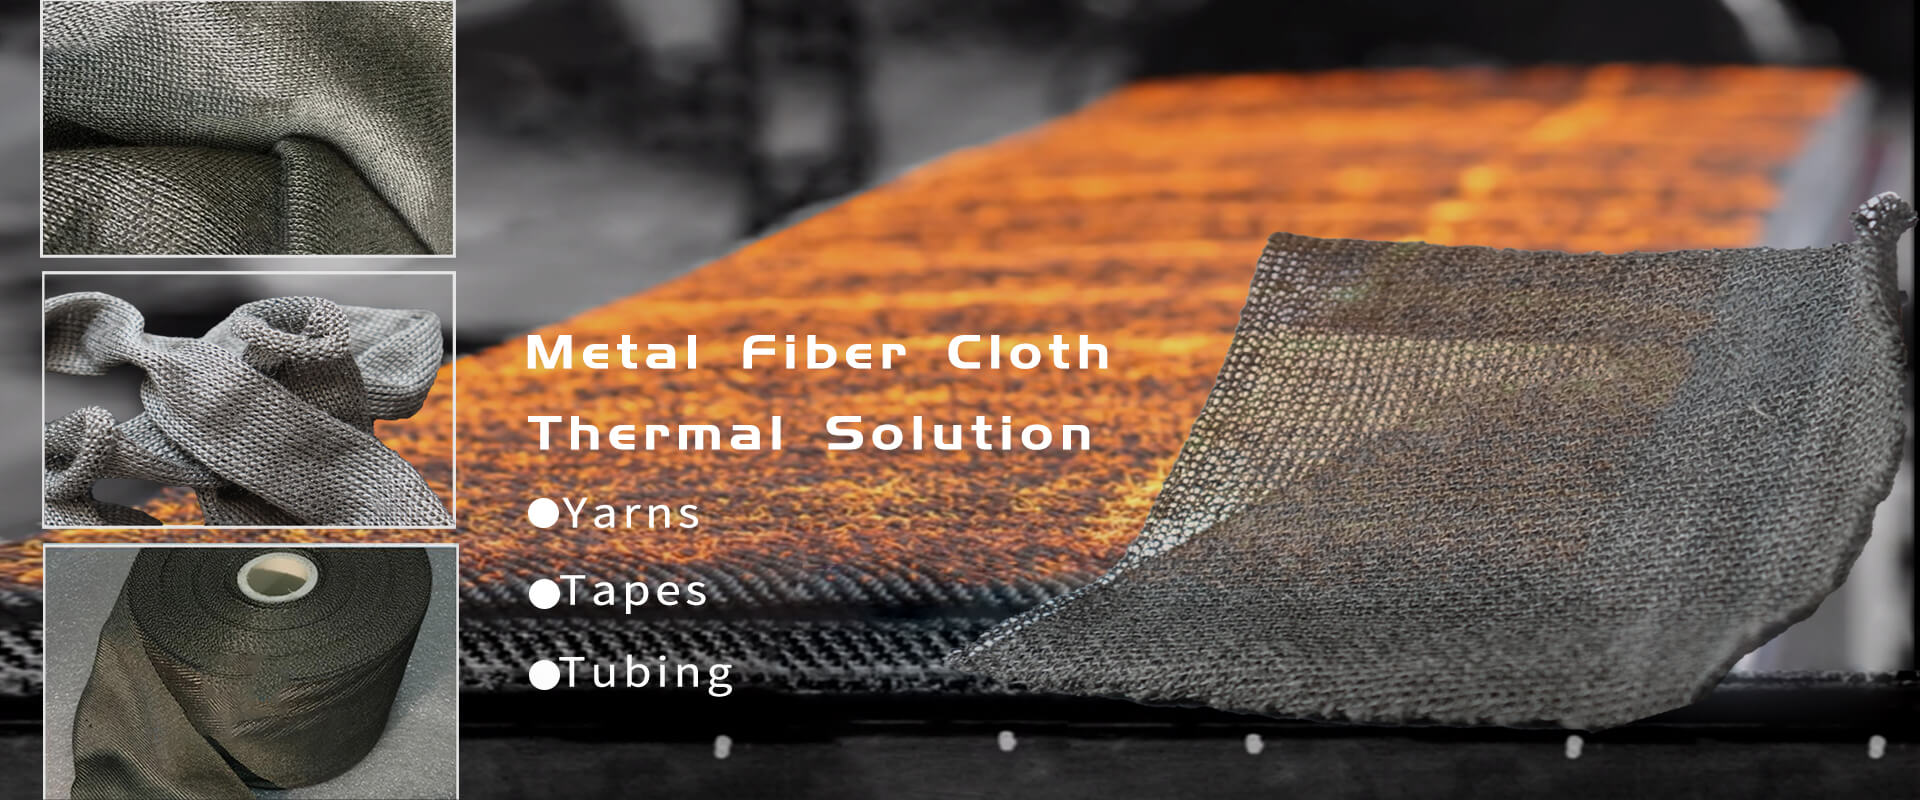 thermal resistant metal fiber cloth<br>thermal resistant metal fiber fabrics<br>thermal resistant metal fiber tapes<br>thermal resistant metal fiber sleeves